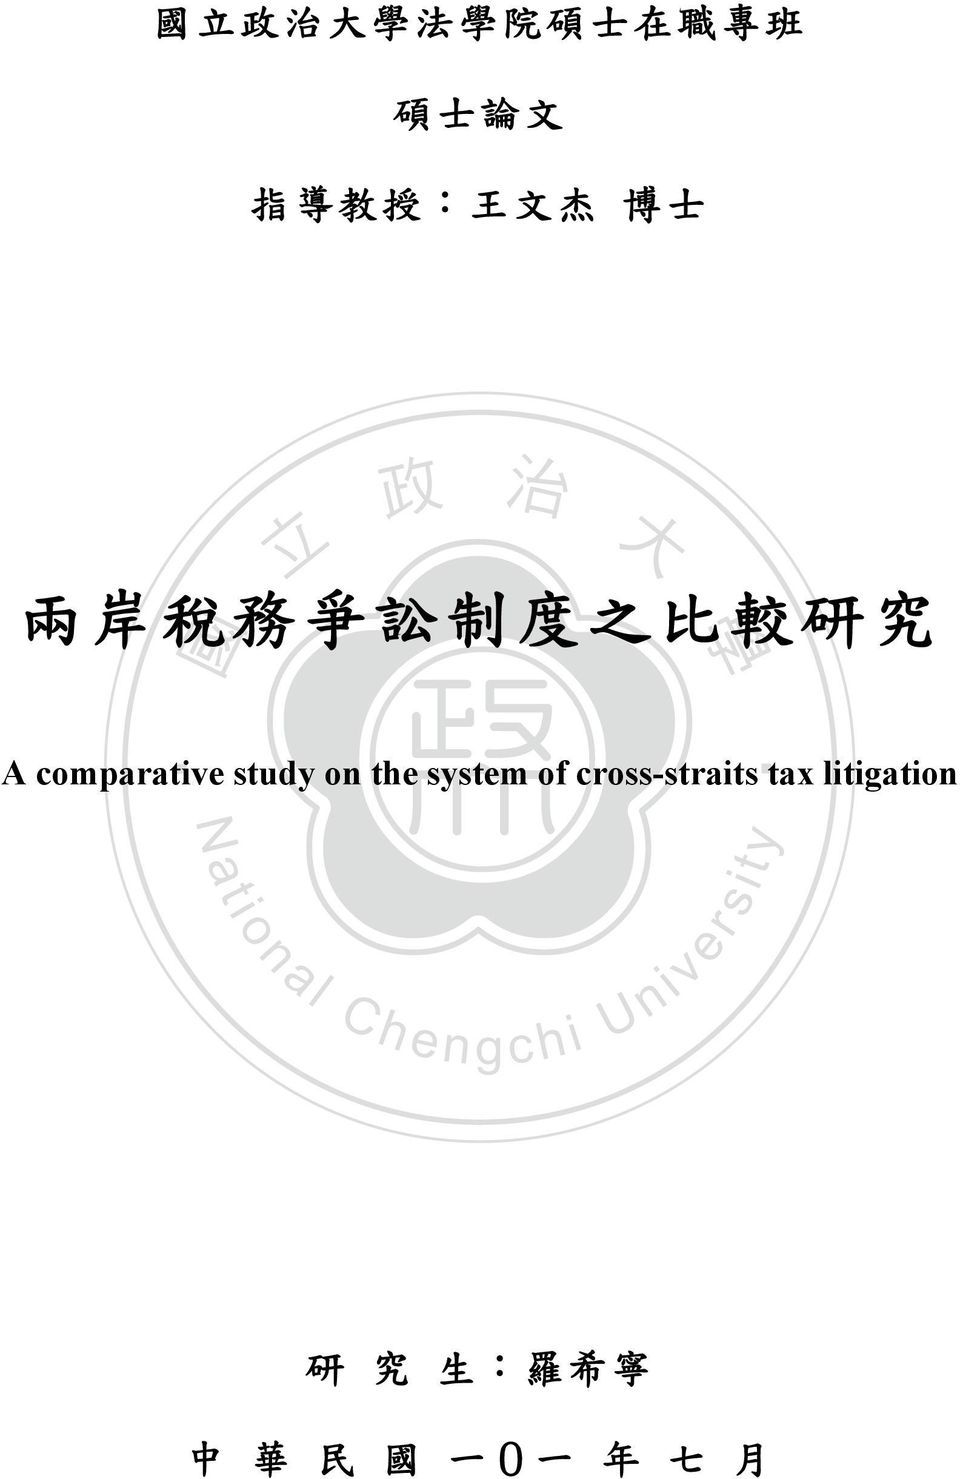 study on the system of cross-straits tax